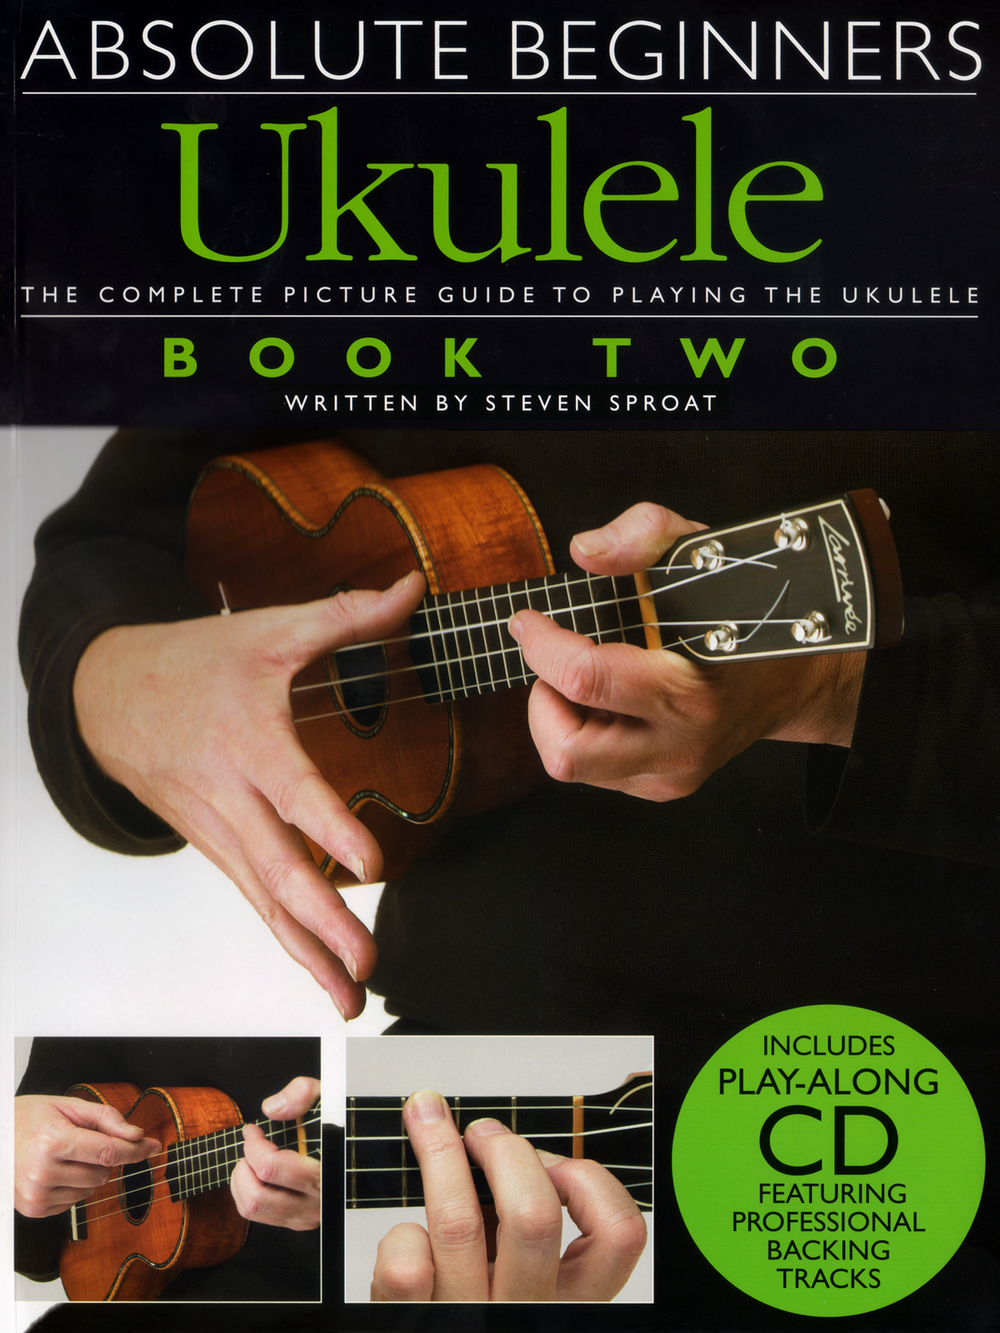 Absolute Beginners Ukulele: Book Two (with CD)